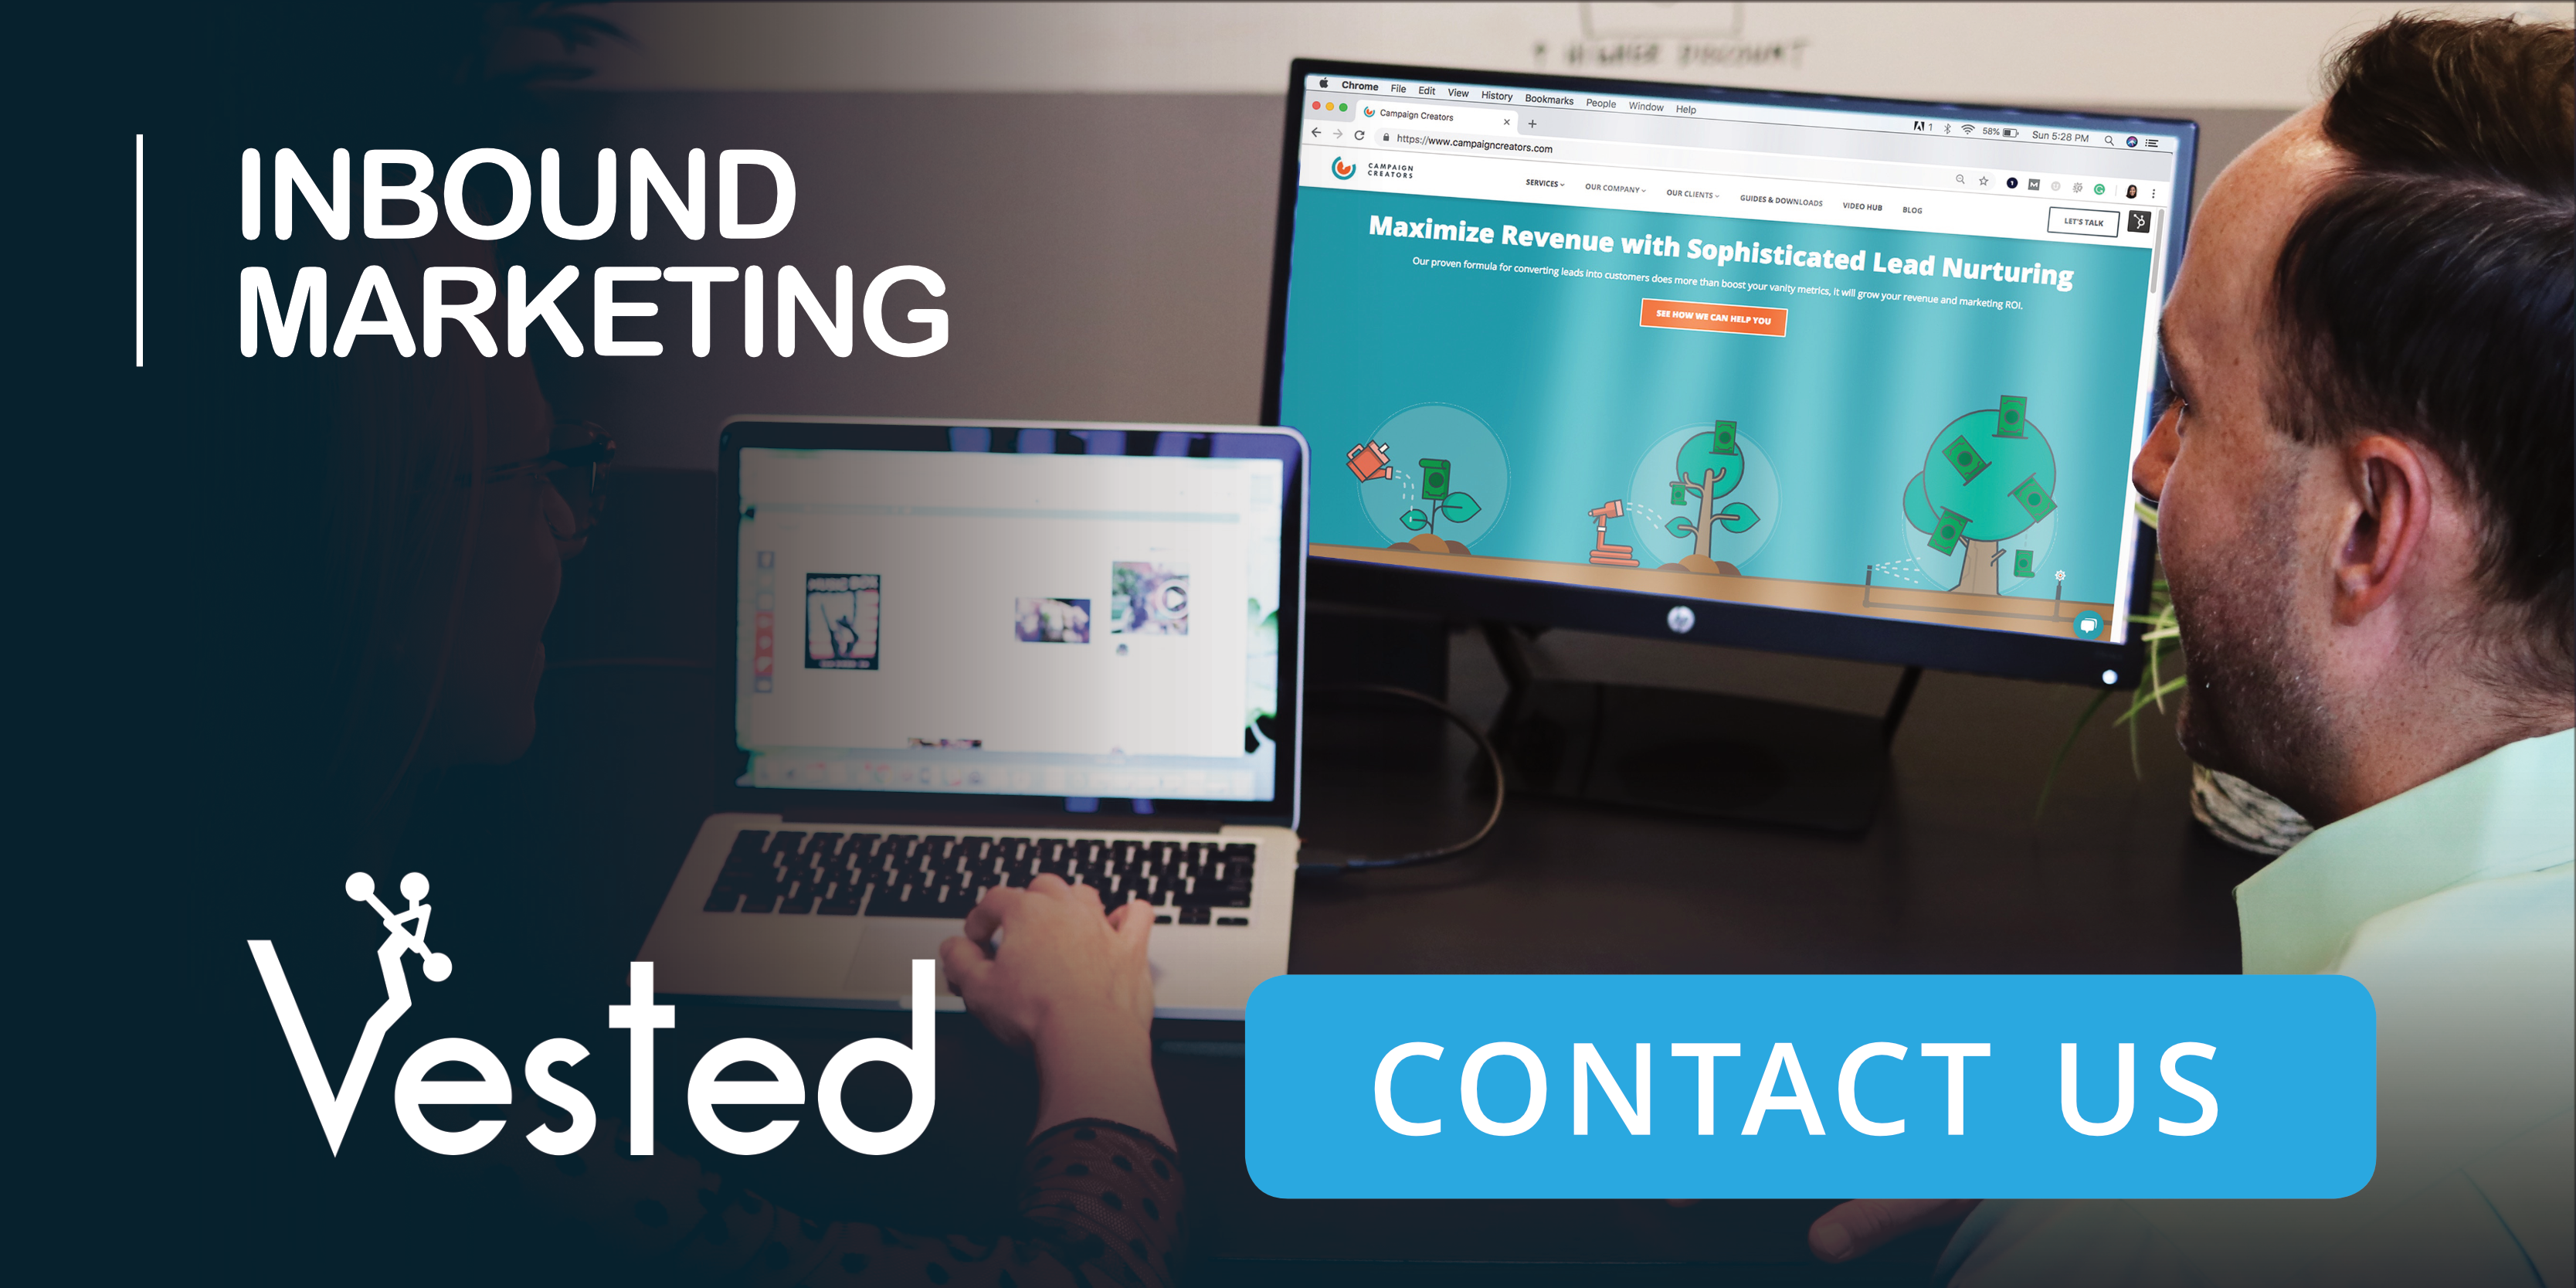 Contact Us - Inbound Marketing